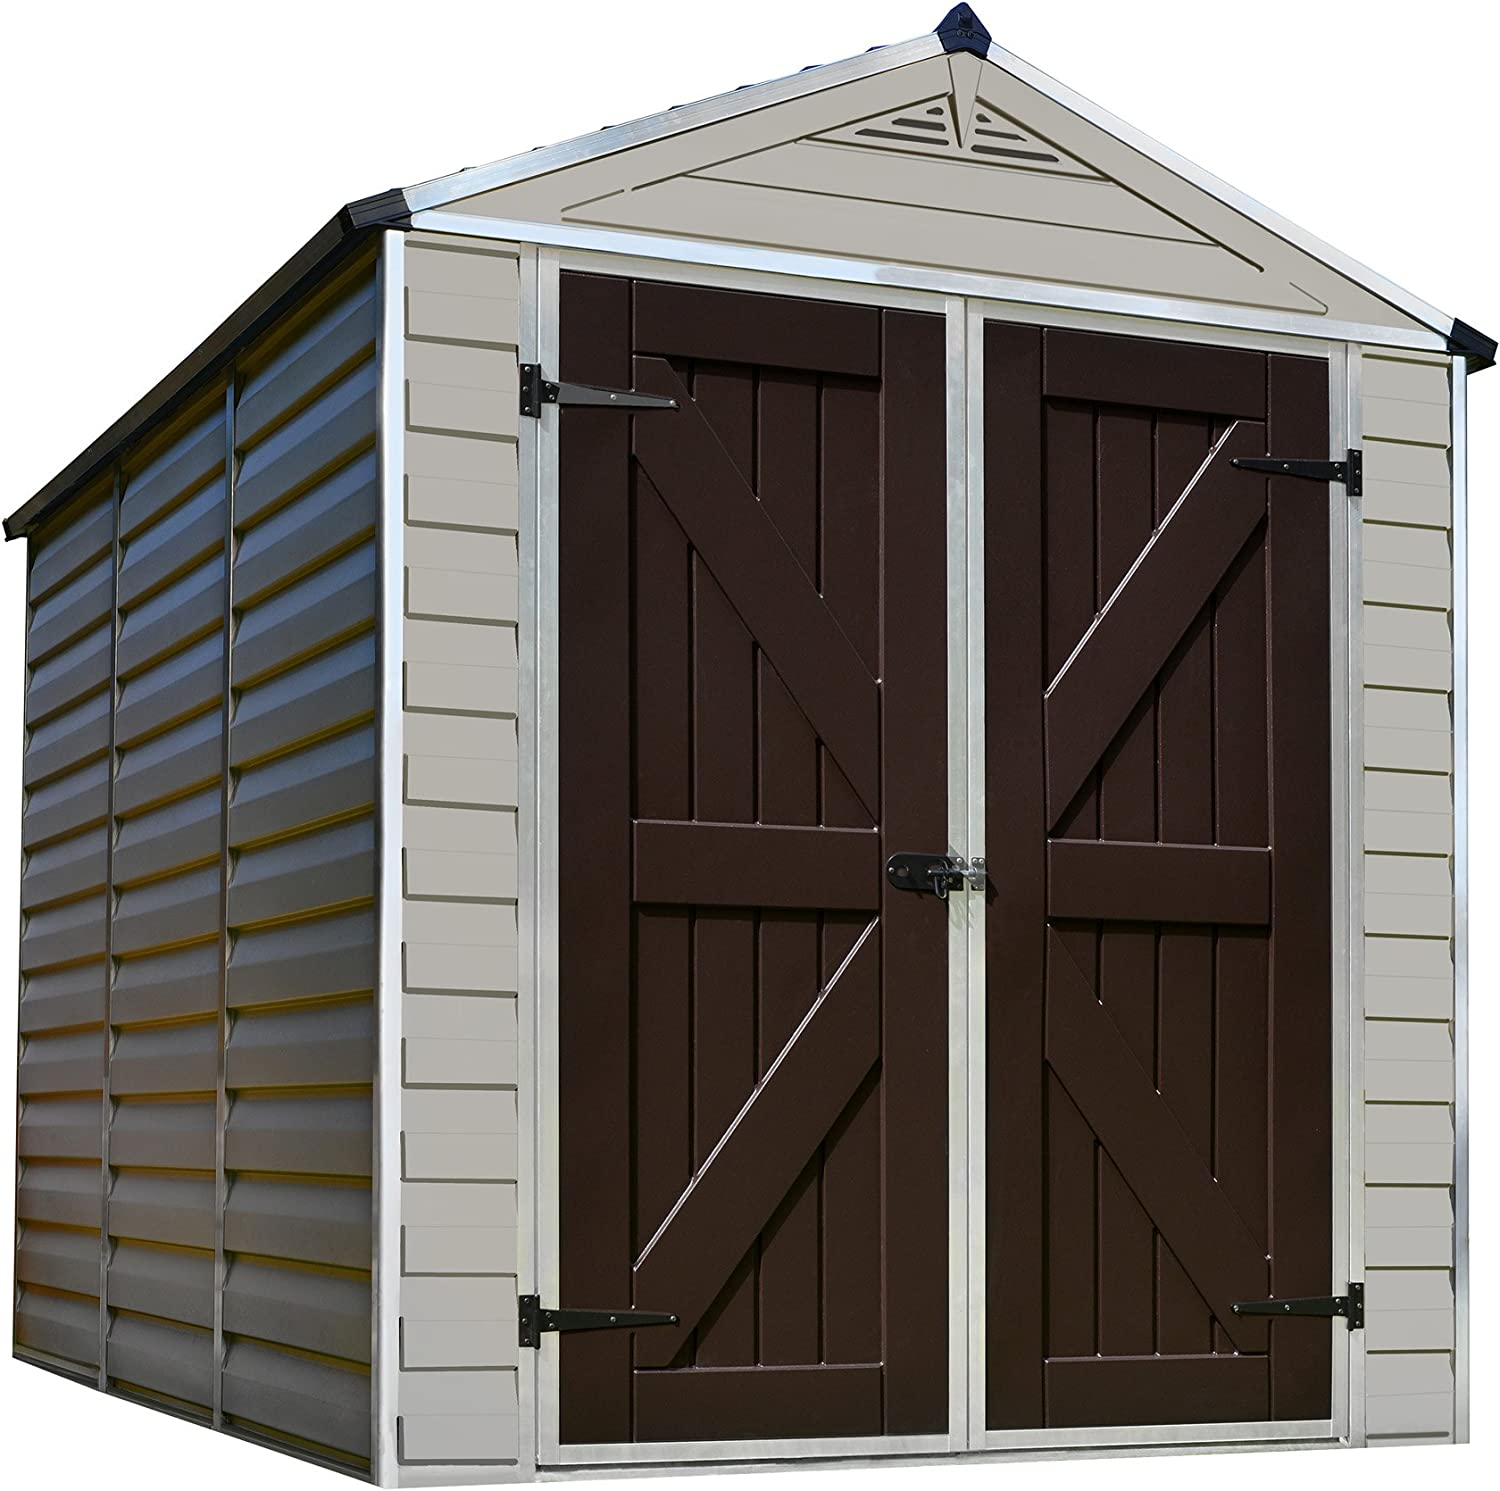 Max 79% OFF Palram SkyLight Storage 2021 spring and summer new Shed 8' x Tan 6'